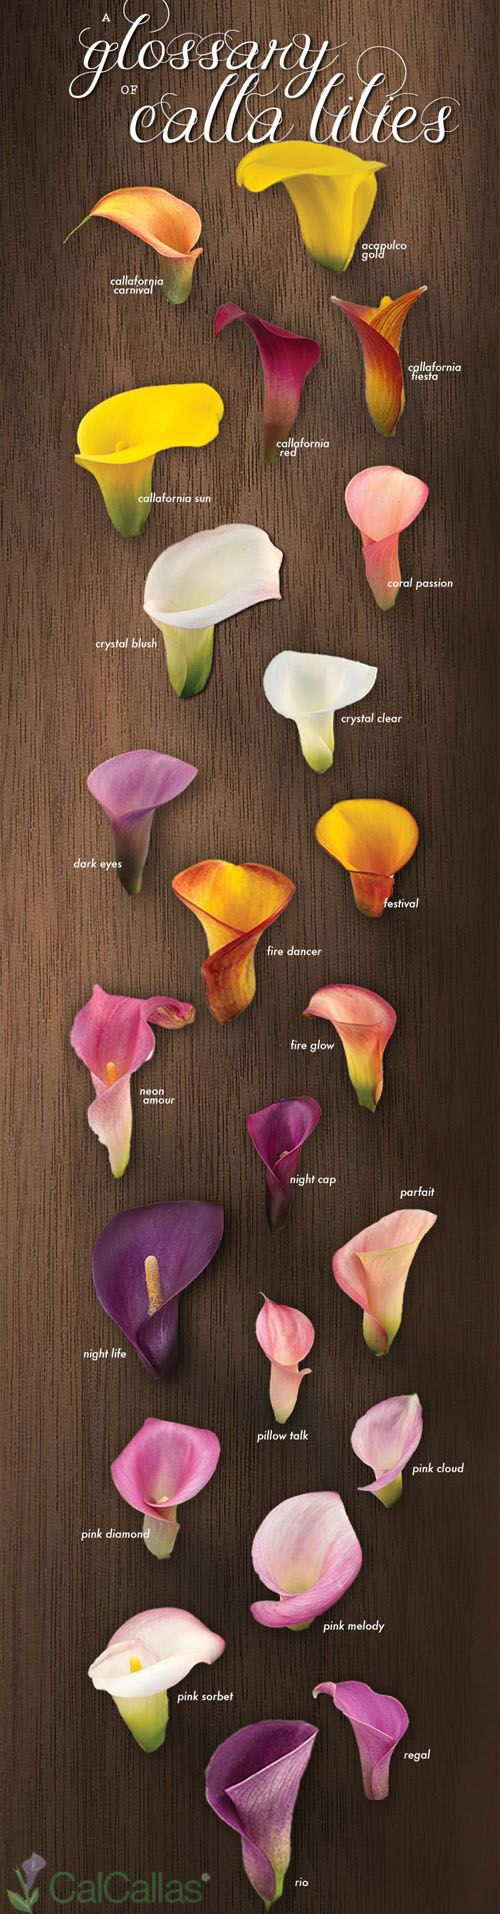 Wedding Flowers: Calla Lily | Woman Getting Married